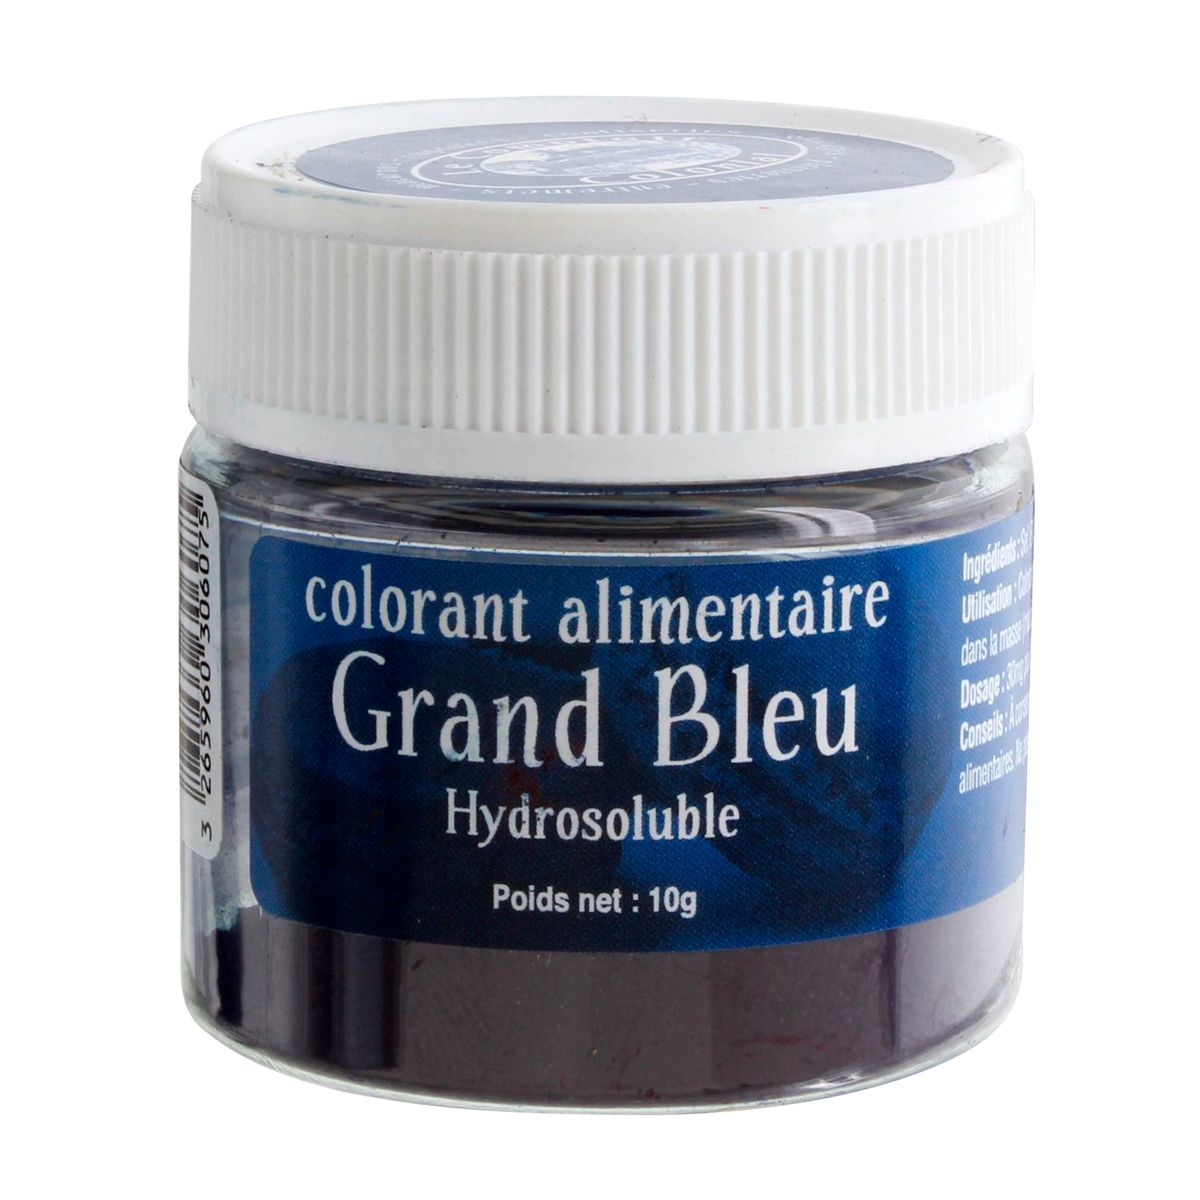 Colorant alimentaire hydrosoluble 10gr grand bleu - Le Comptoir Colonial